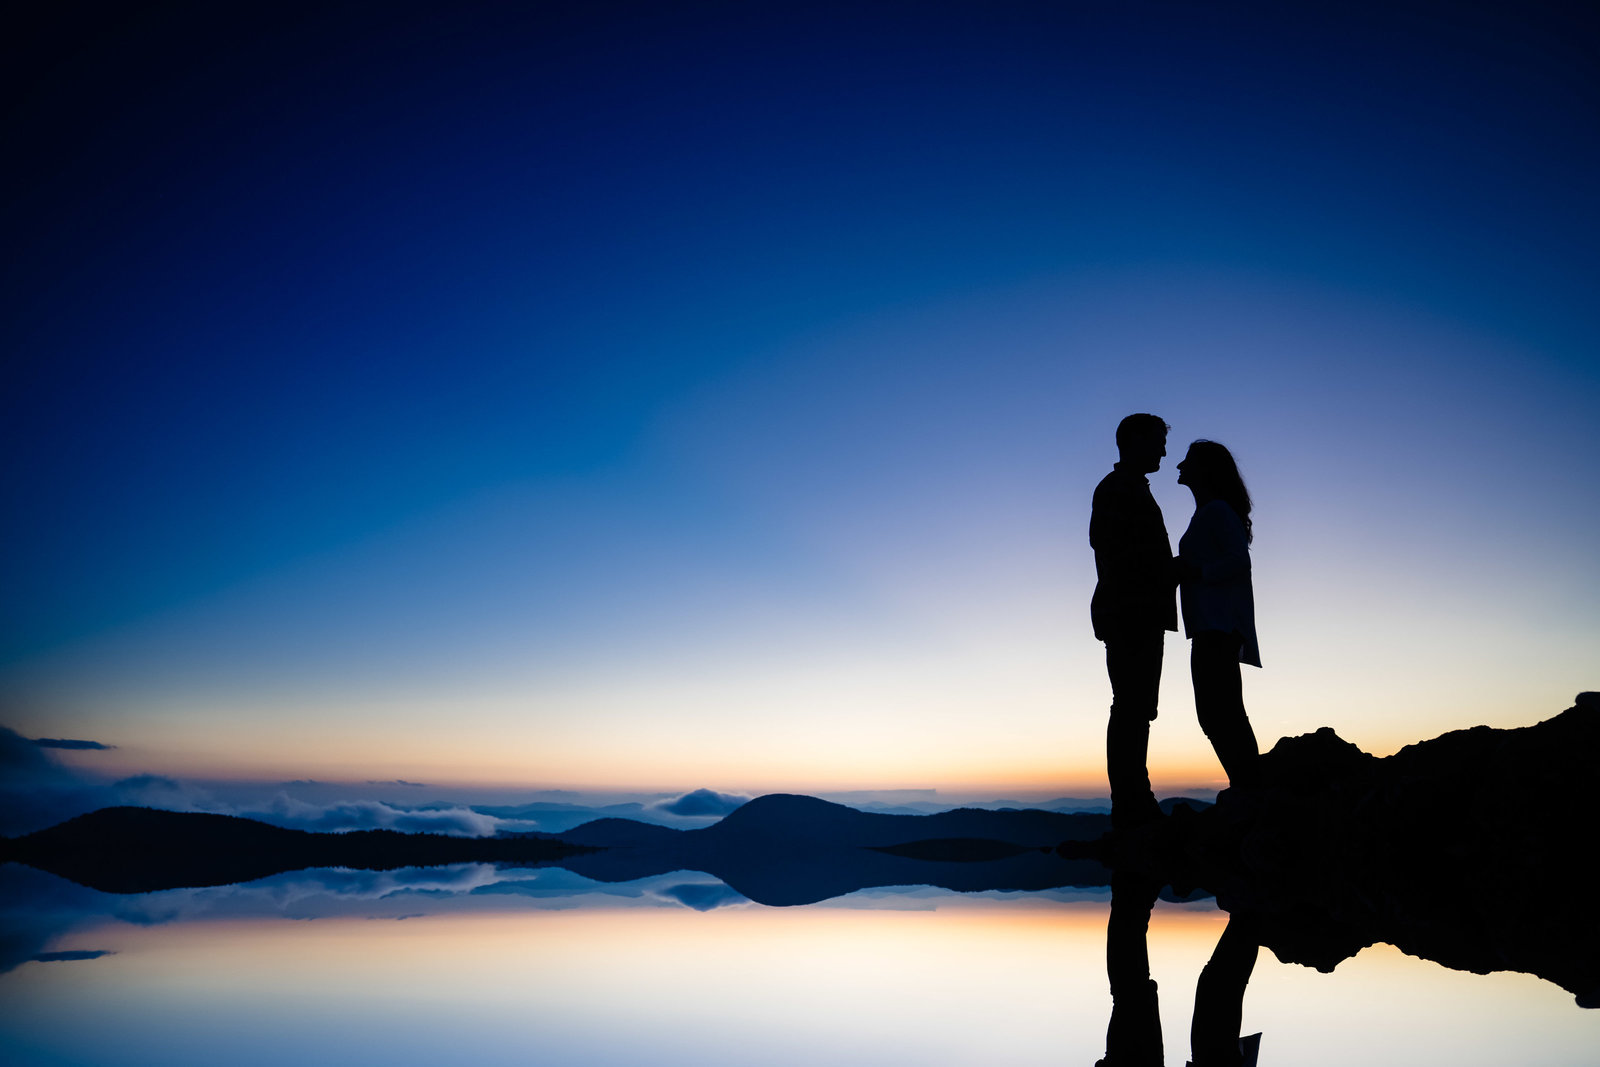 couple silhouette on top of mountain